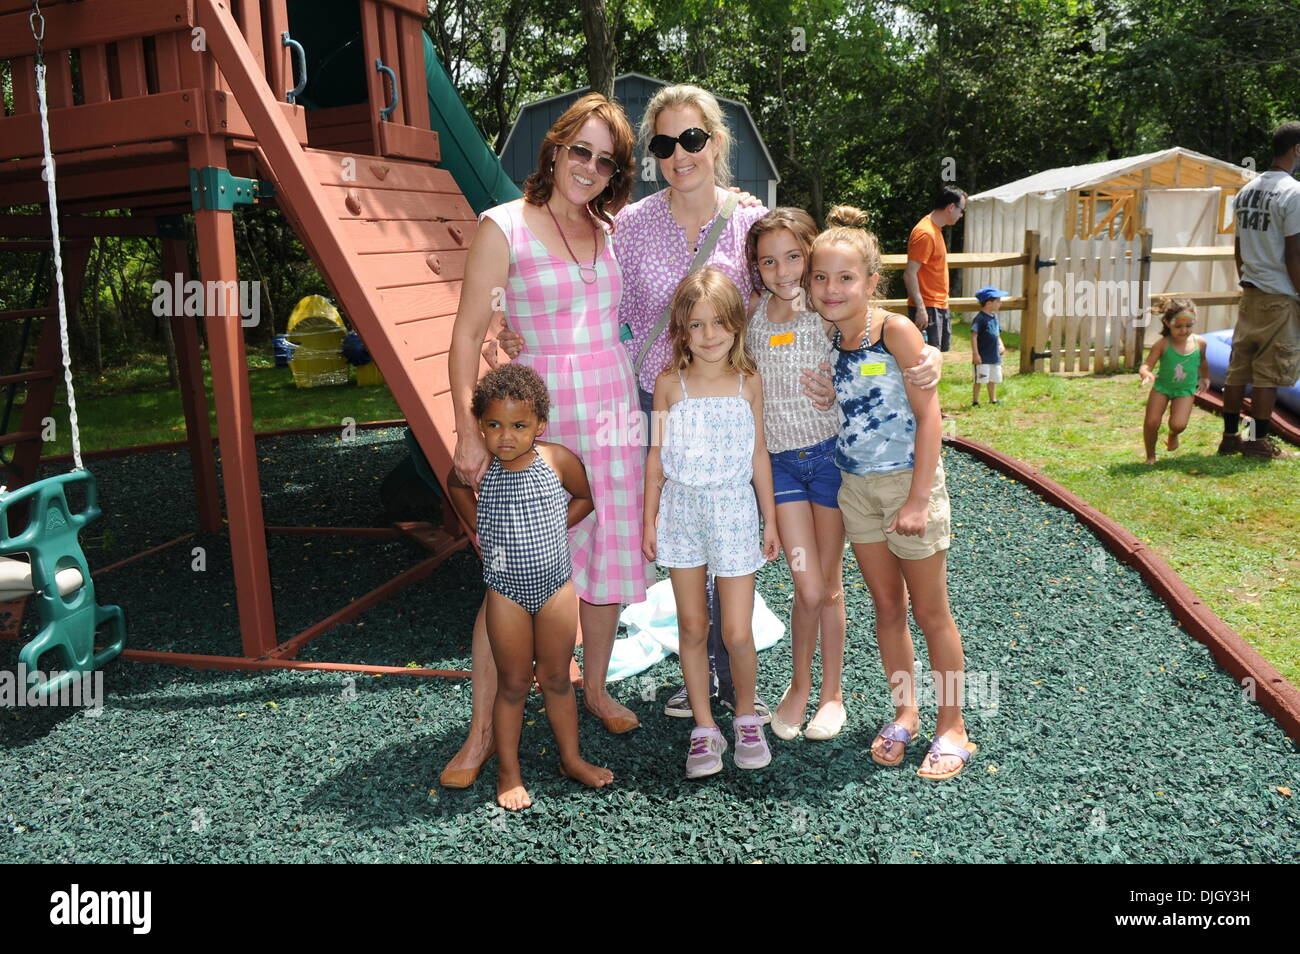 Alexandra Wentworth Alexandra Wentworth Aka Ali Wentworth And Her Children 4th Annual